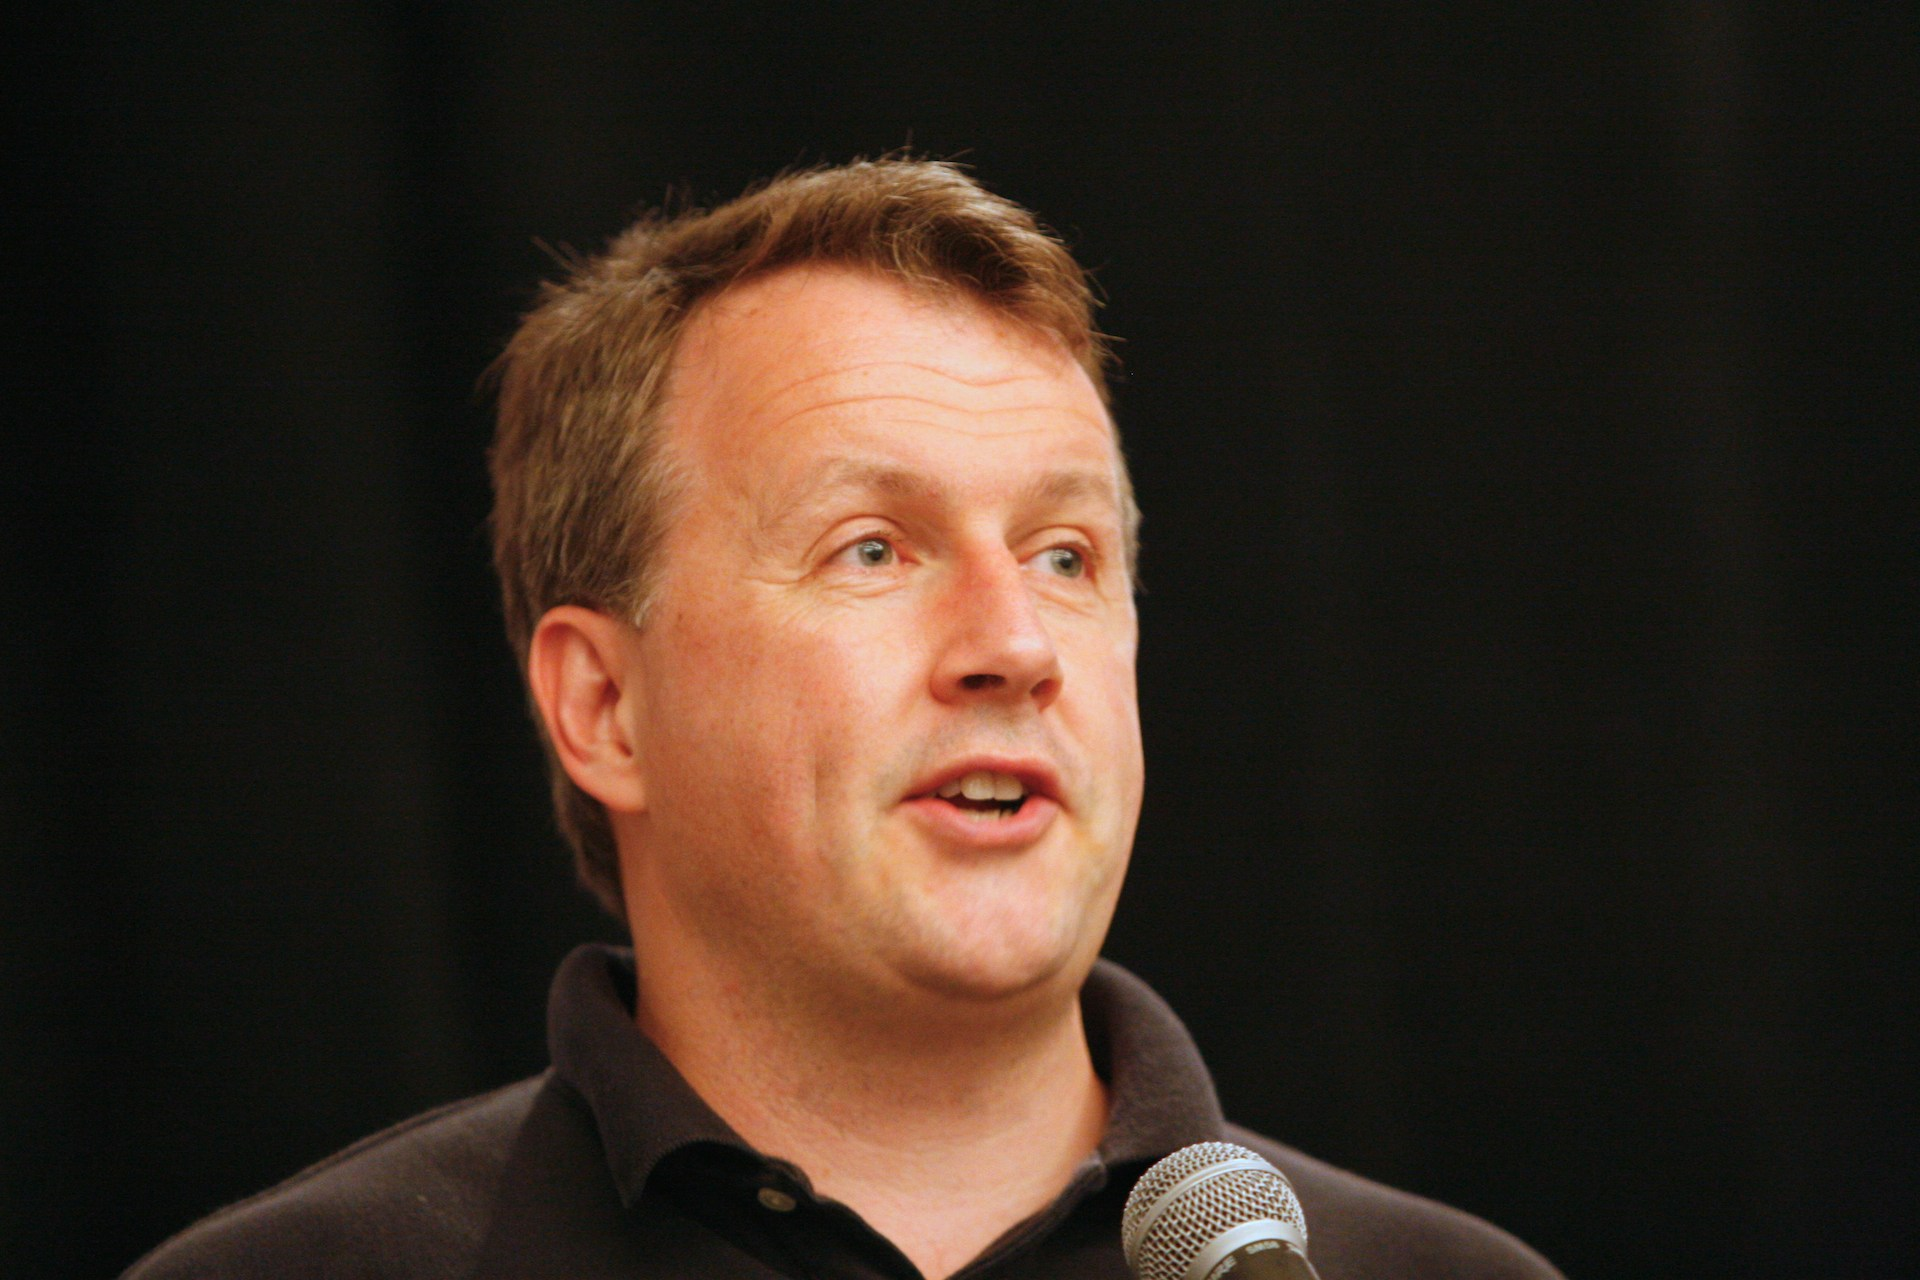 paul graham essays Paul graham essay translations - collection of 174 essays covering up to 13 languages (web app, startup books, and tech) read the opinion of 8 influencers discover 4 alternatives like paul graham essays search and how to start a startup - paul graham.